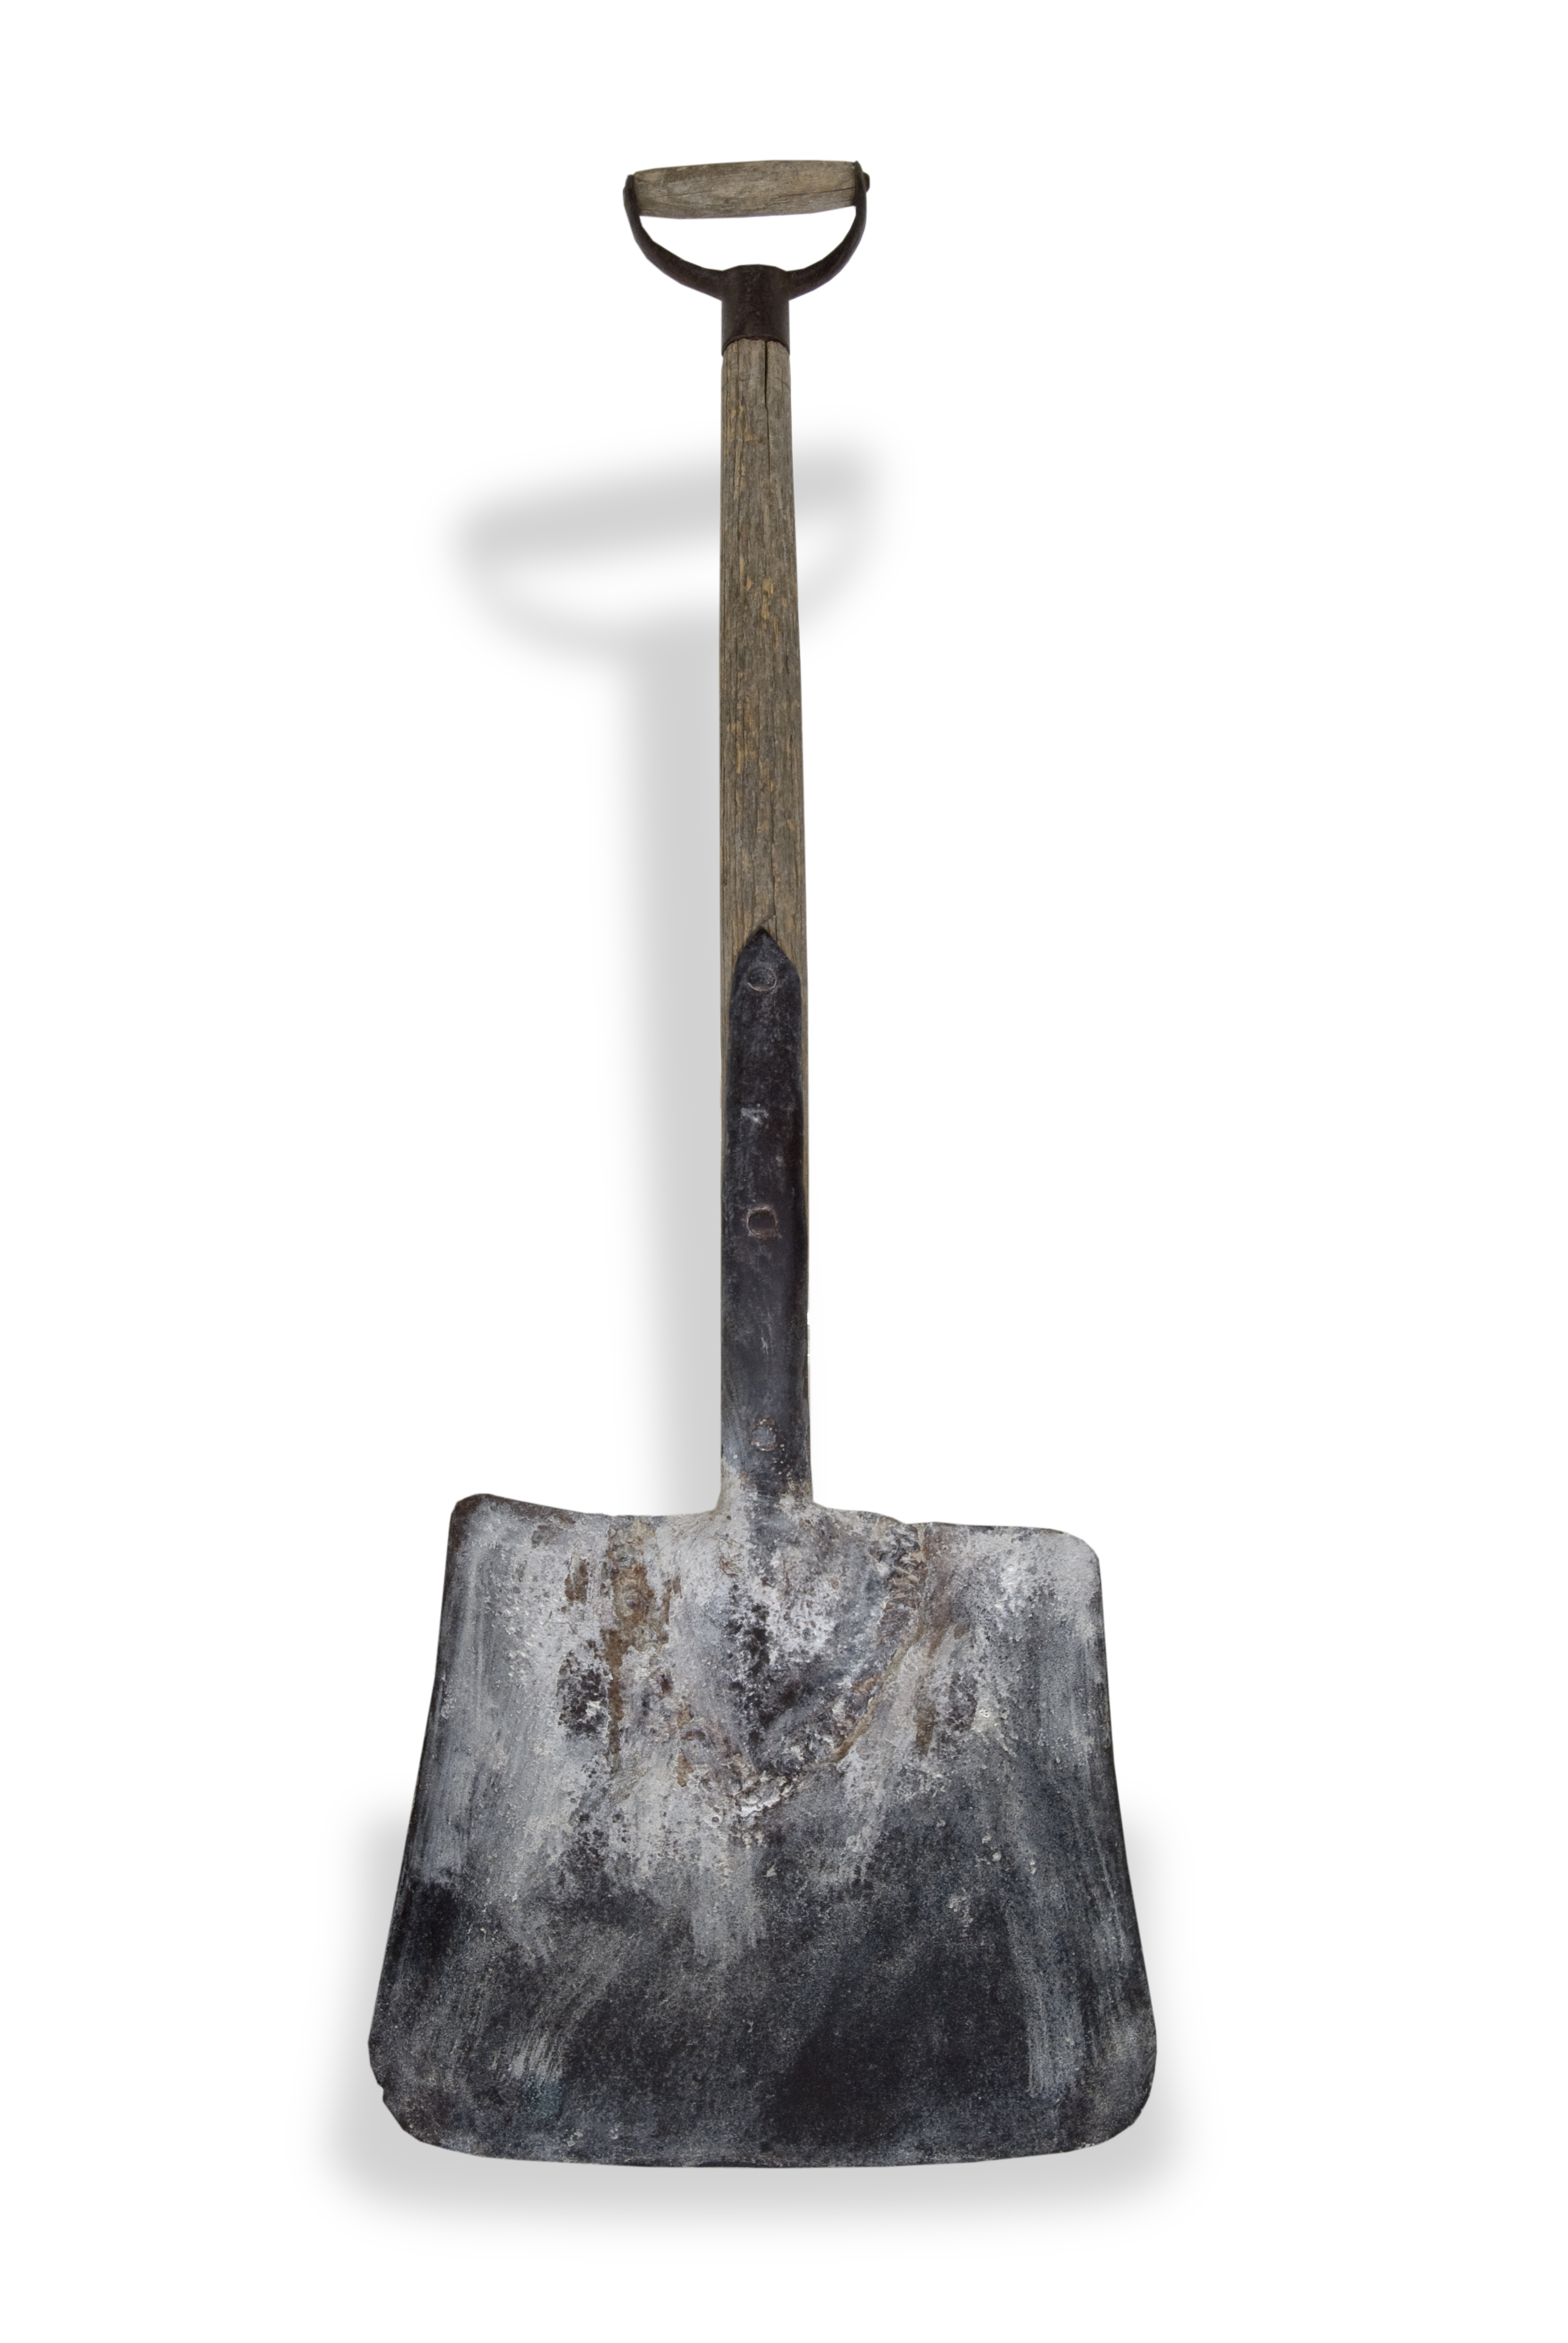 Railroad shovel